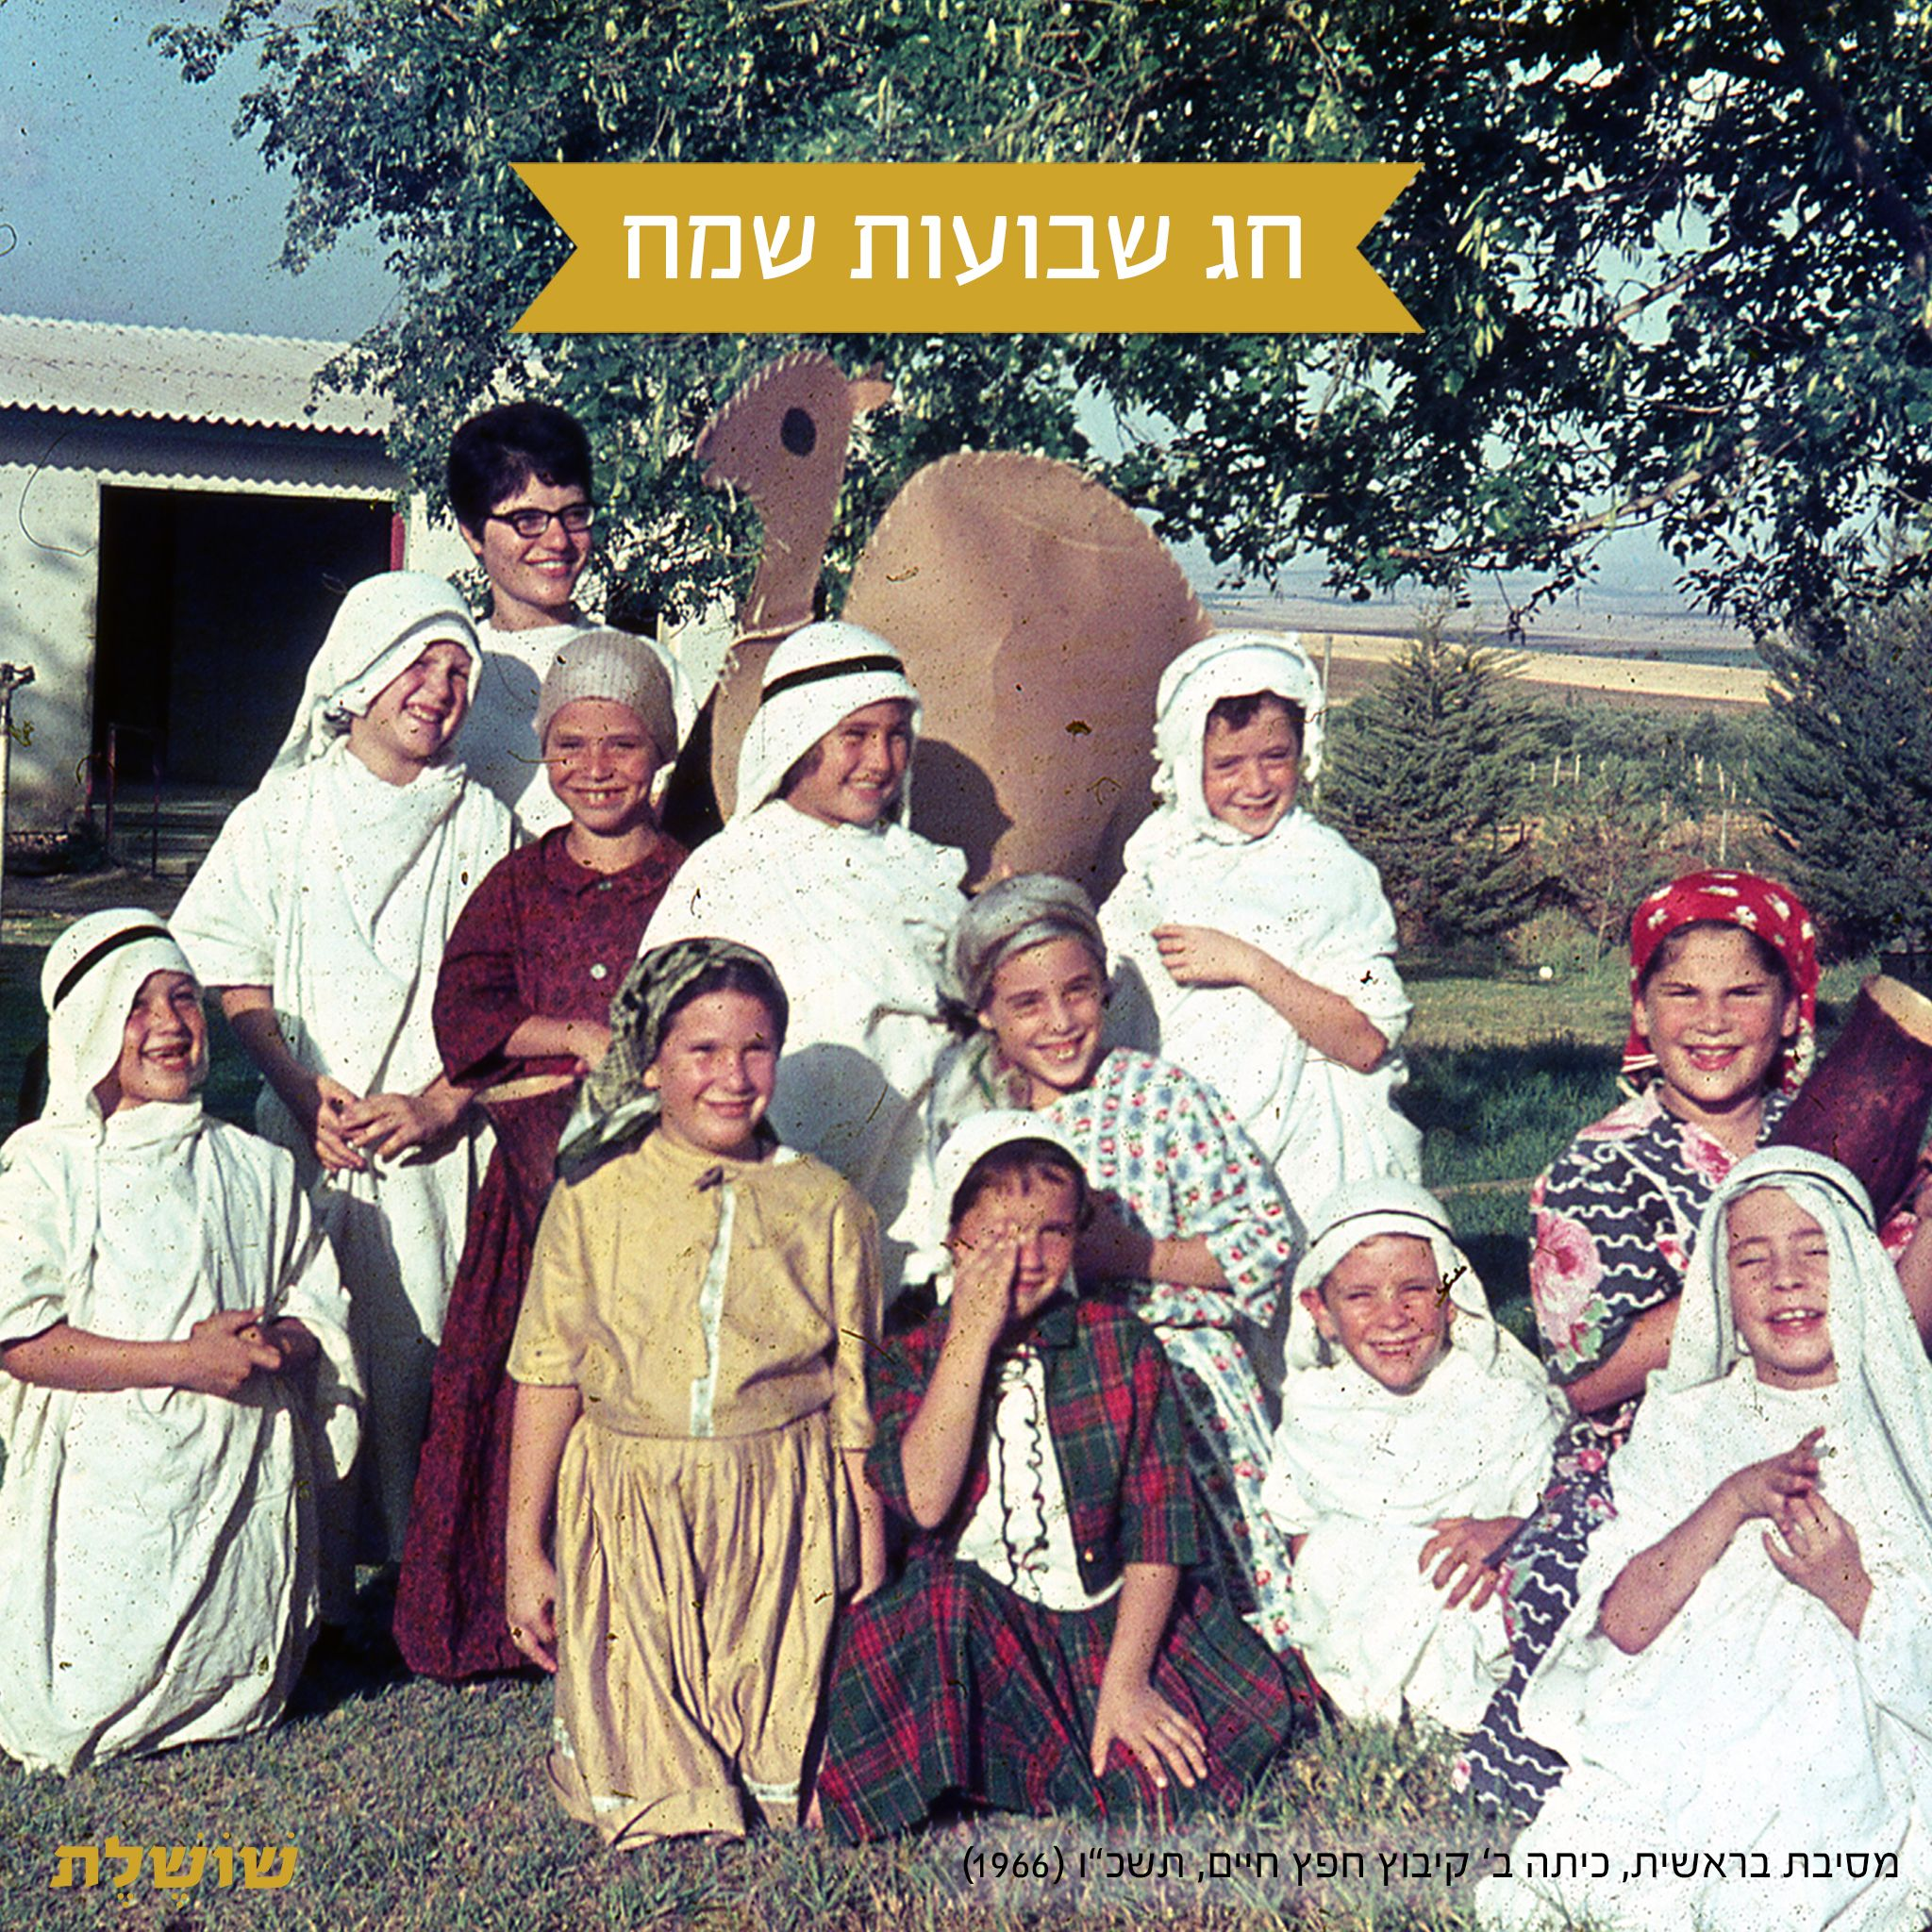 #happy #holiday #שבועות #shavuot #Hafetz Haim #kibbutz #israel #vintagephoto #oldpictures #oldfamilyphotos #60s #heritage @shoshelet